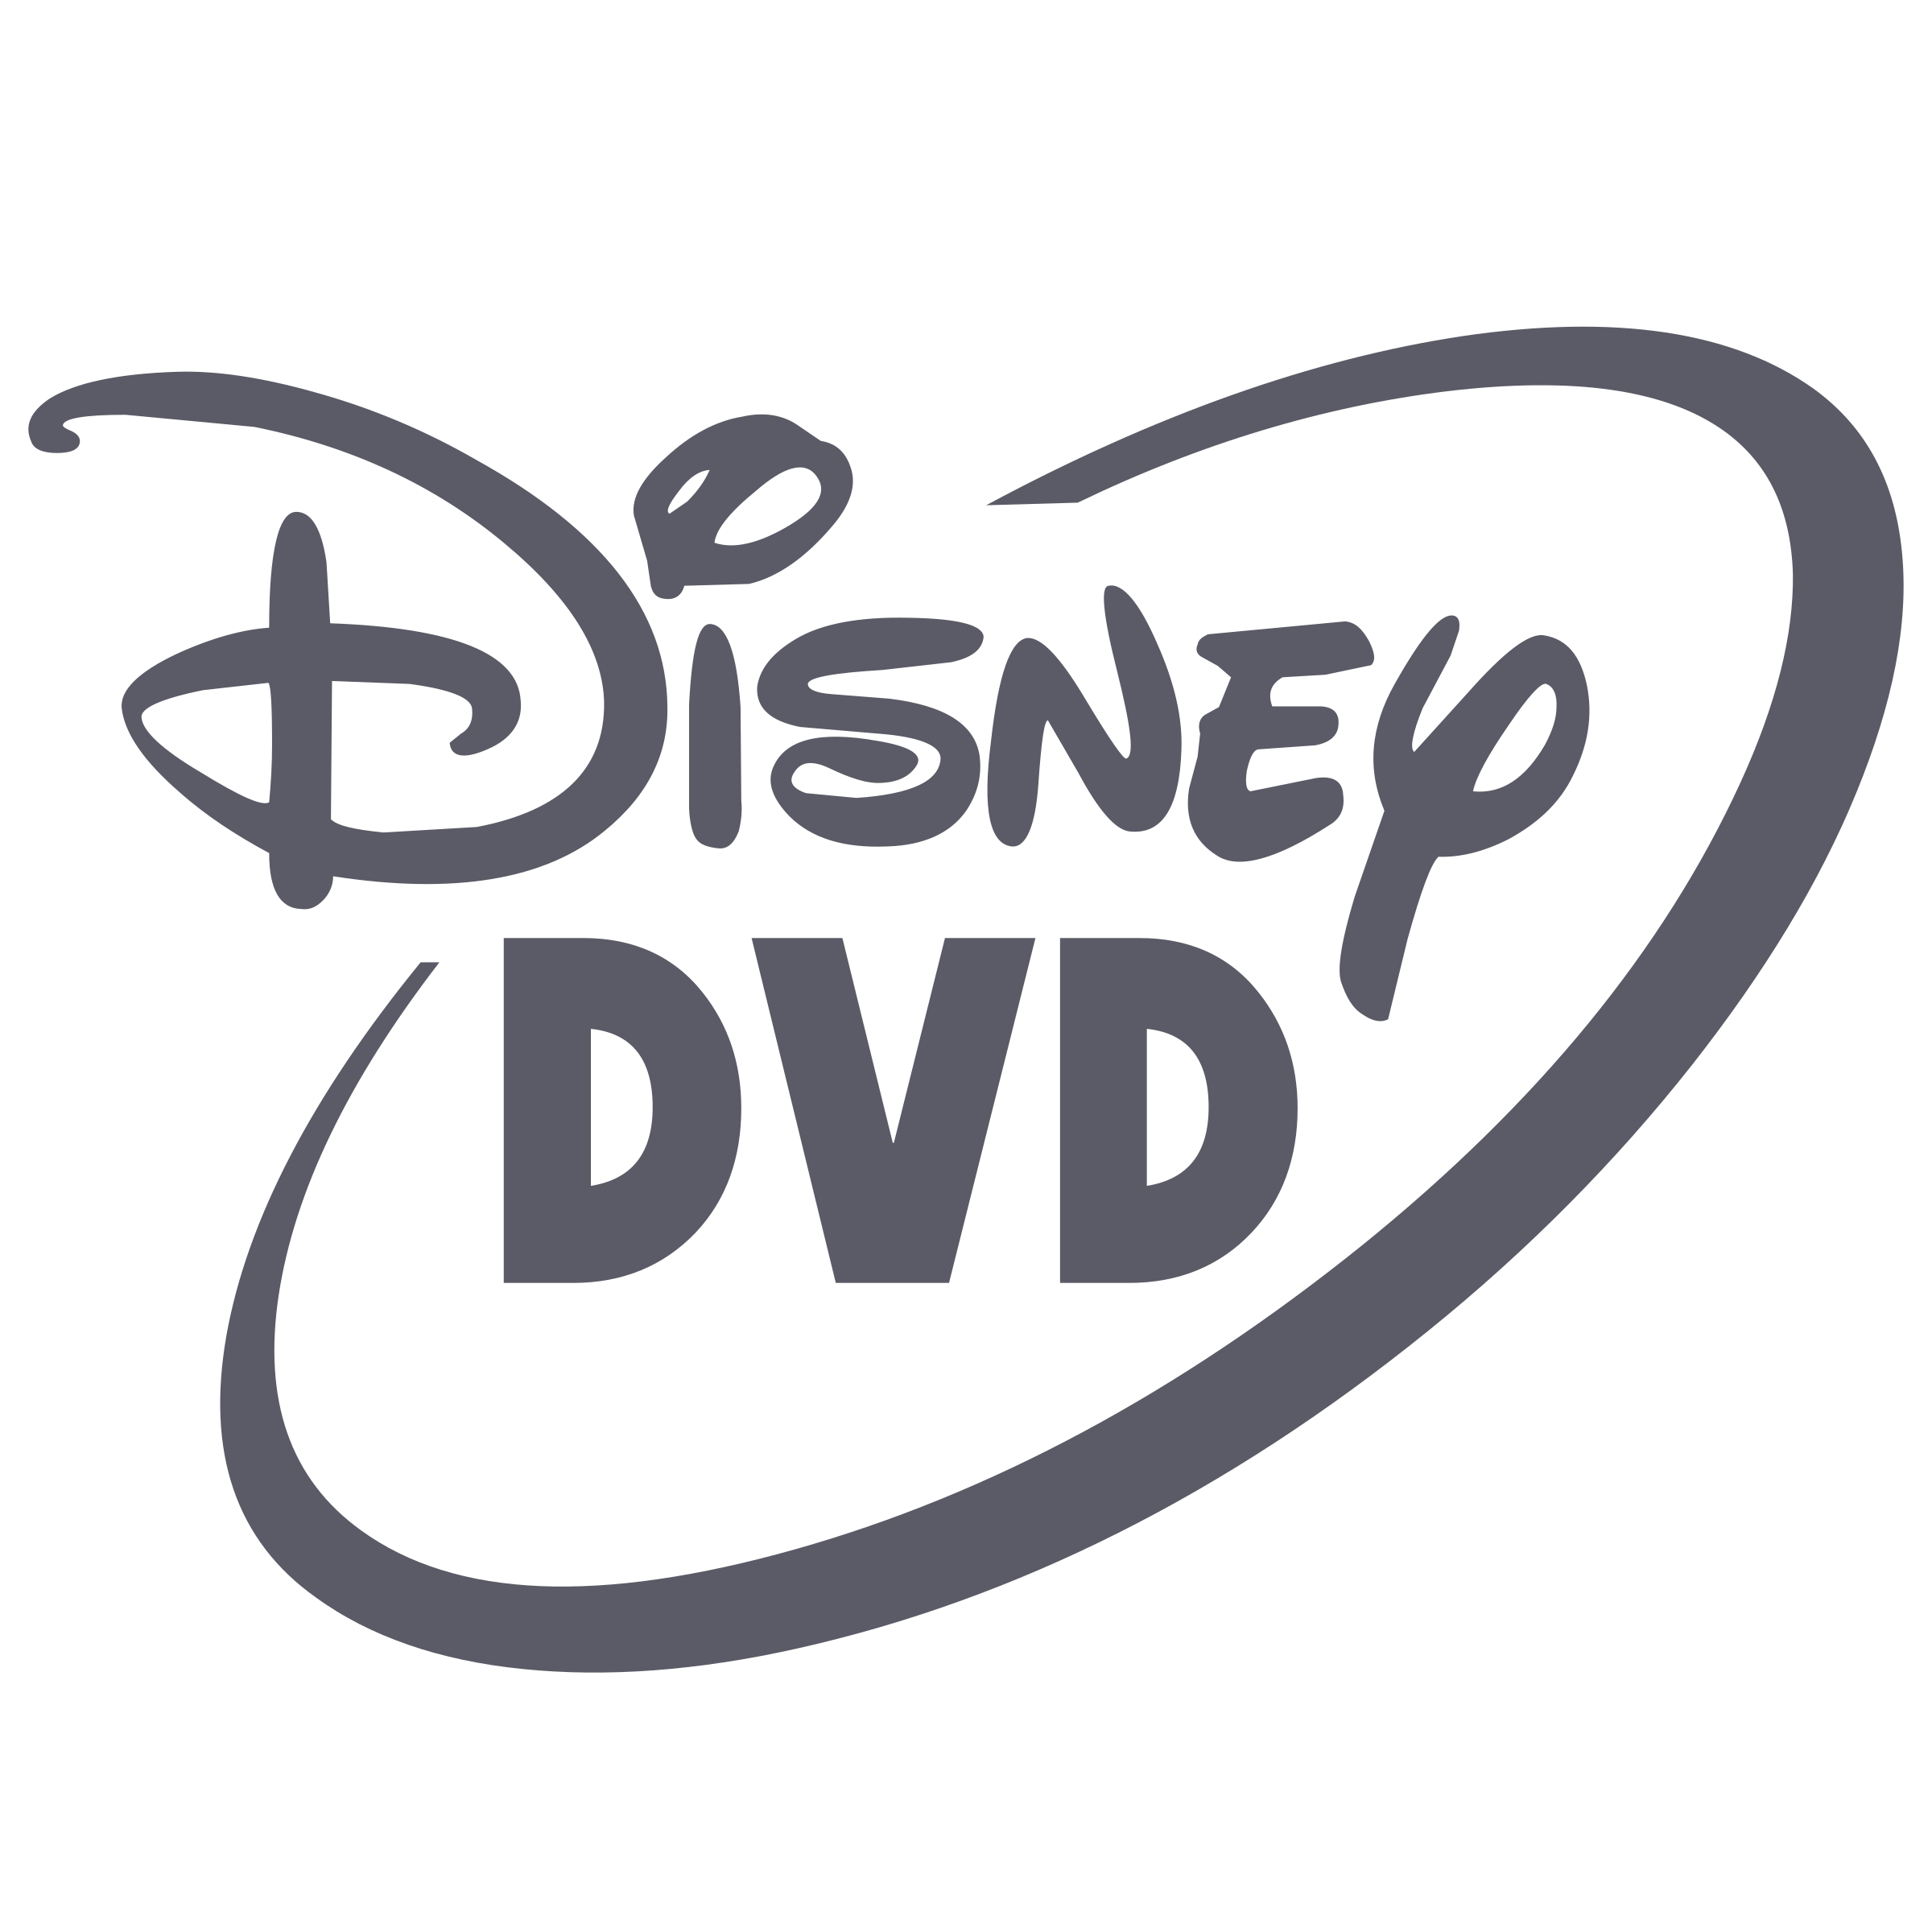 Disney dvd logo png. Transparent svg vector freebie